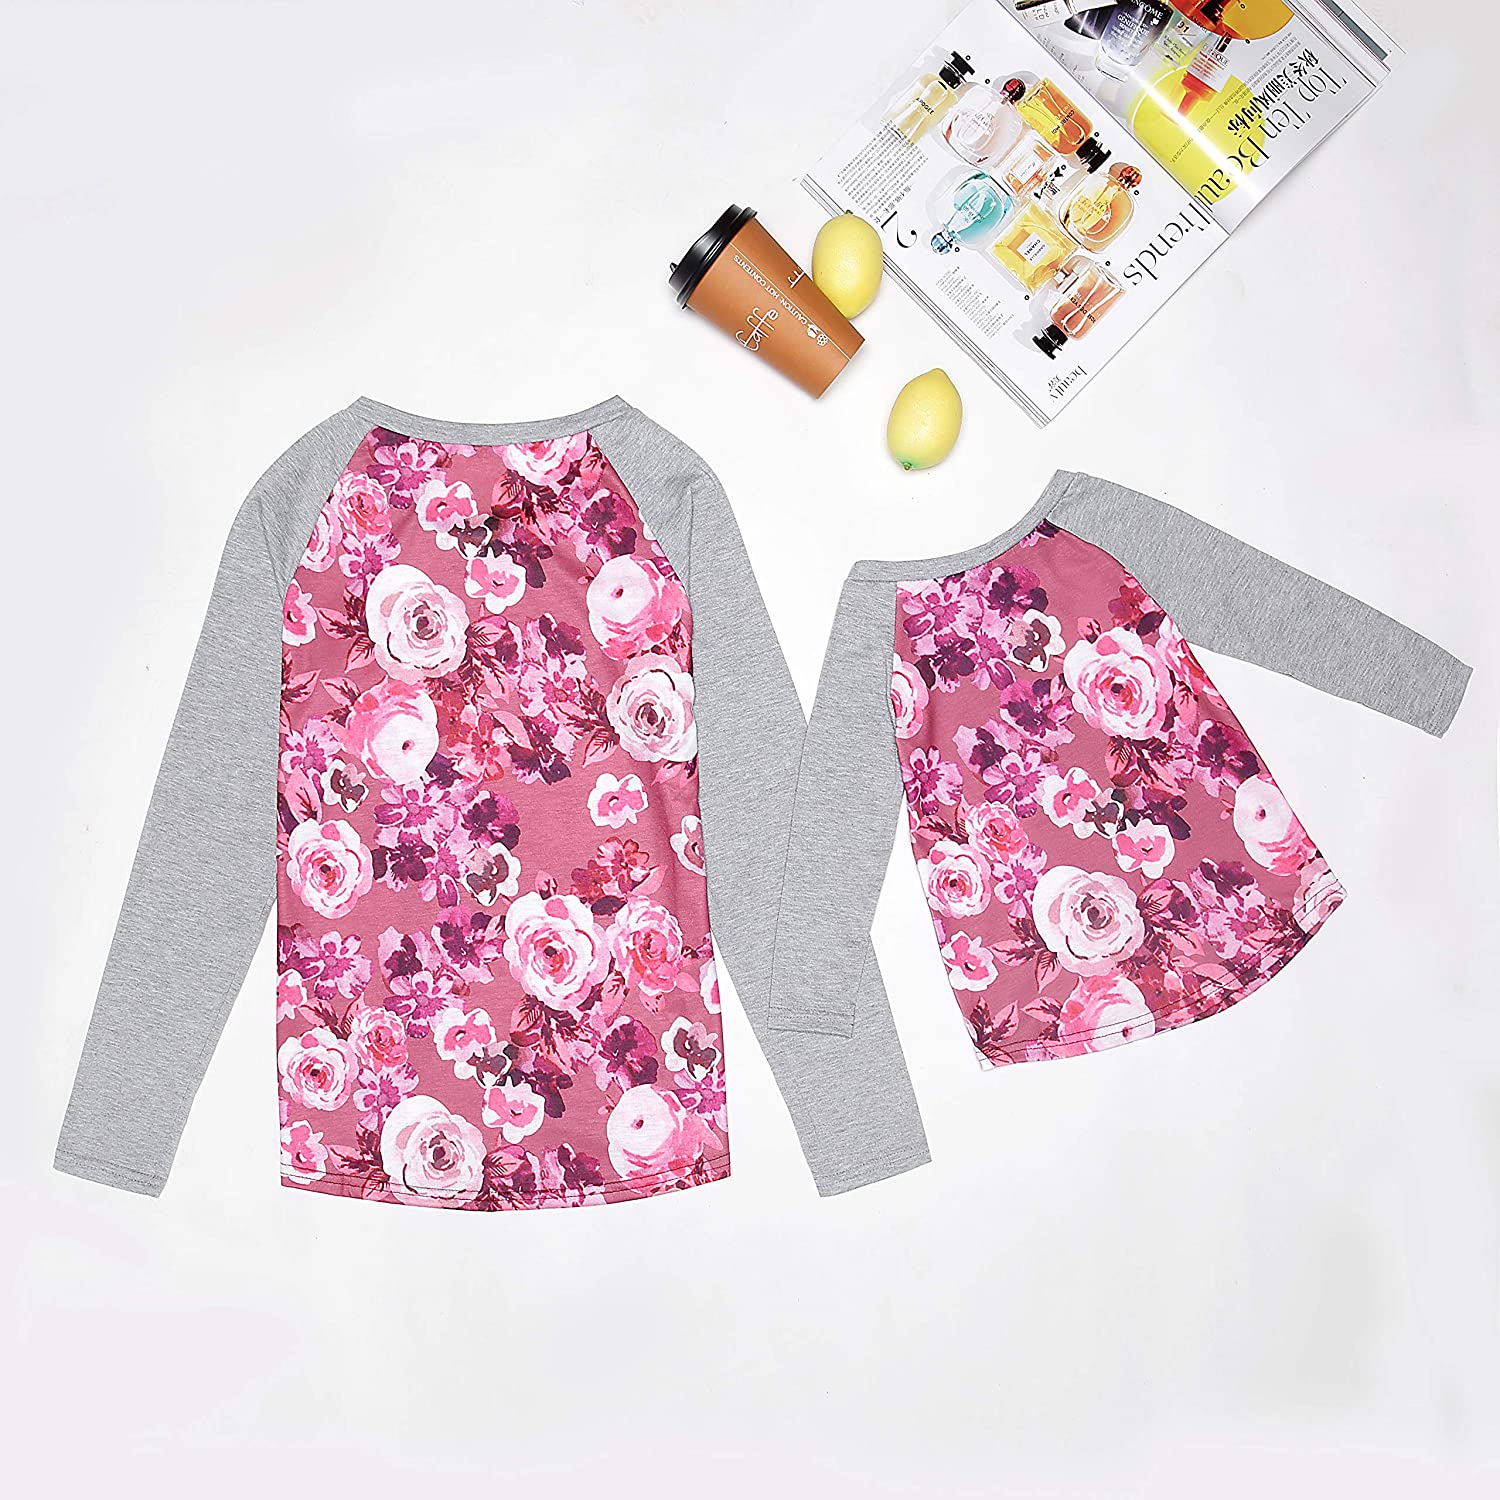 YT Baby Mommy and Me Floral Print Long Sleeve T Shirt Blouse Tops Mother and Daughter Family Matching Clothes